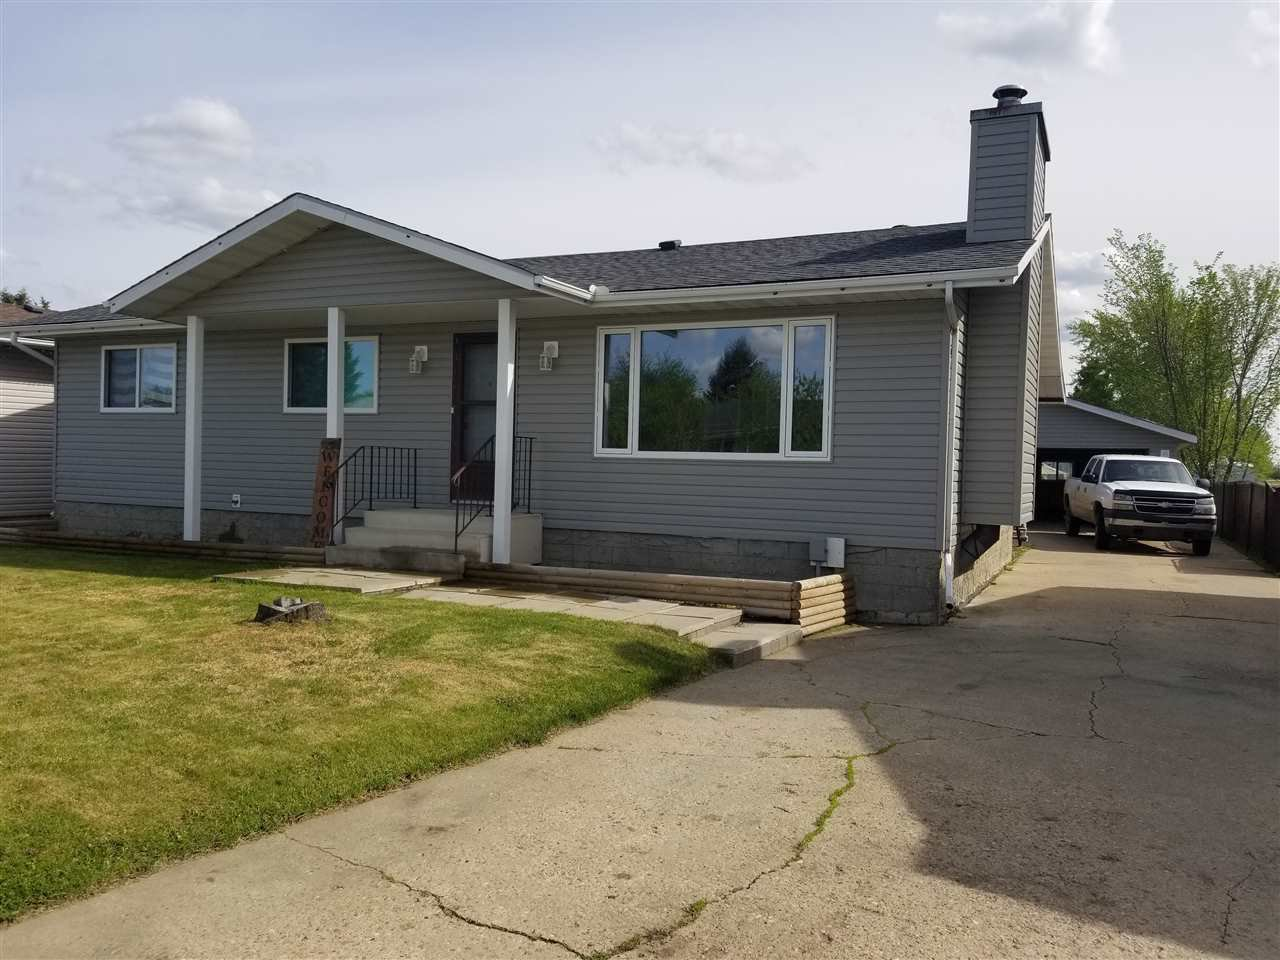 Main Photo: 5916 53 Avenue: Redwater House for sale : MLS®# E4180700